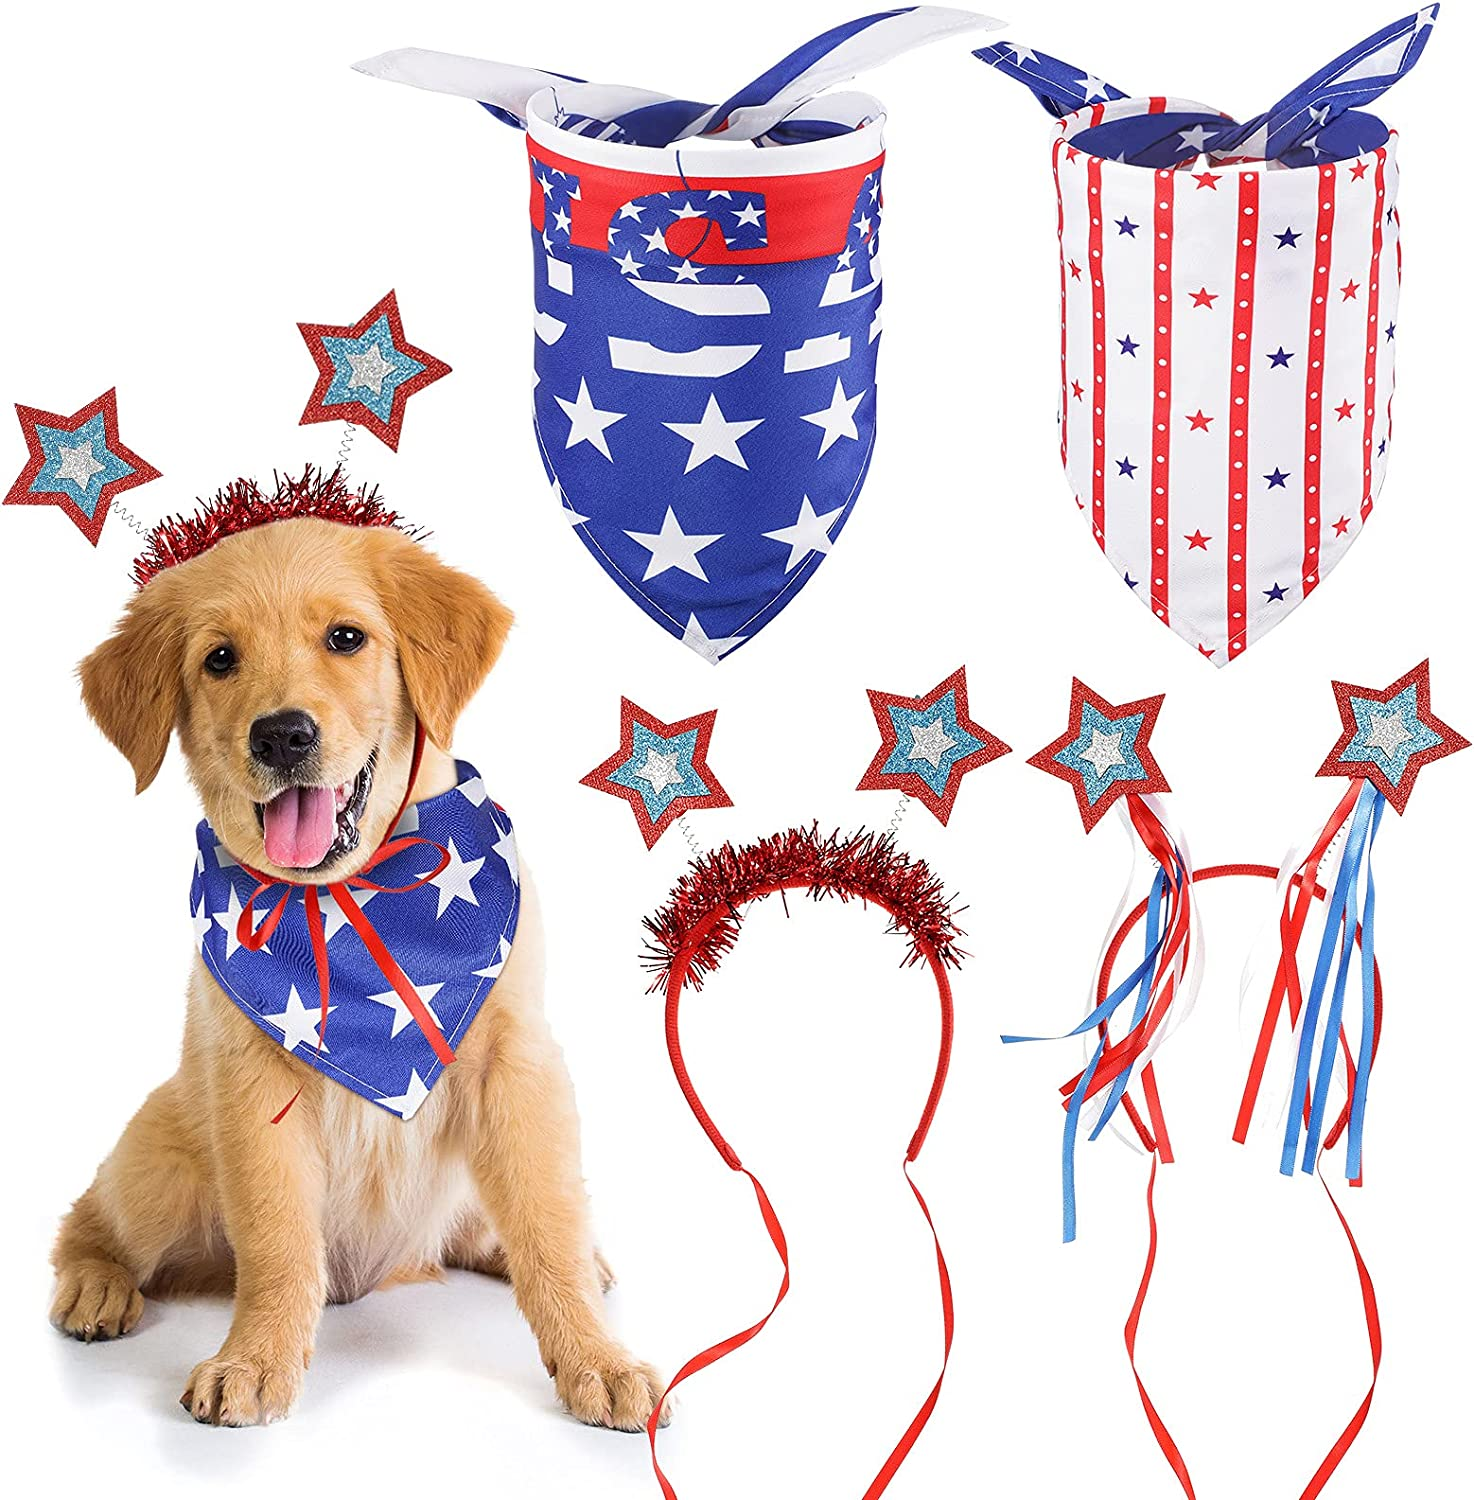 2 Pieces American Flag Courier shipping free shipping Dog Bandanas and Pie Triangle Scarf Pet Max 82% OFF